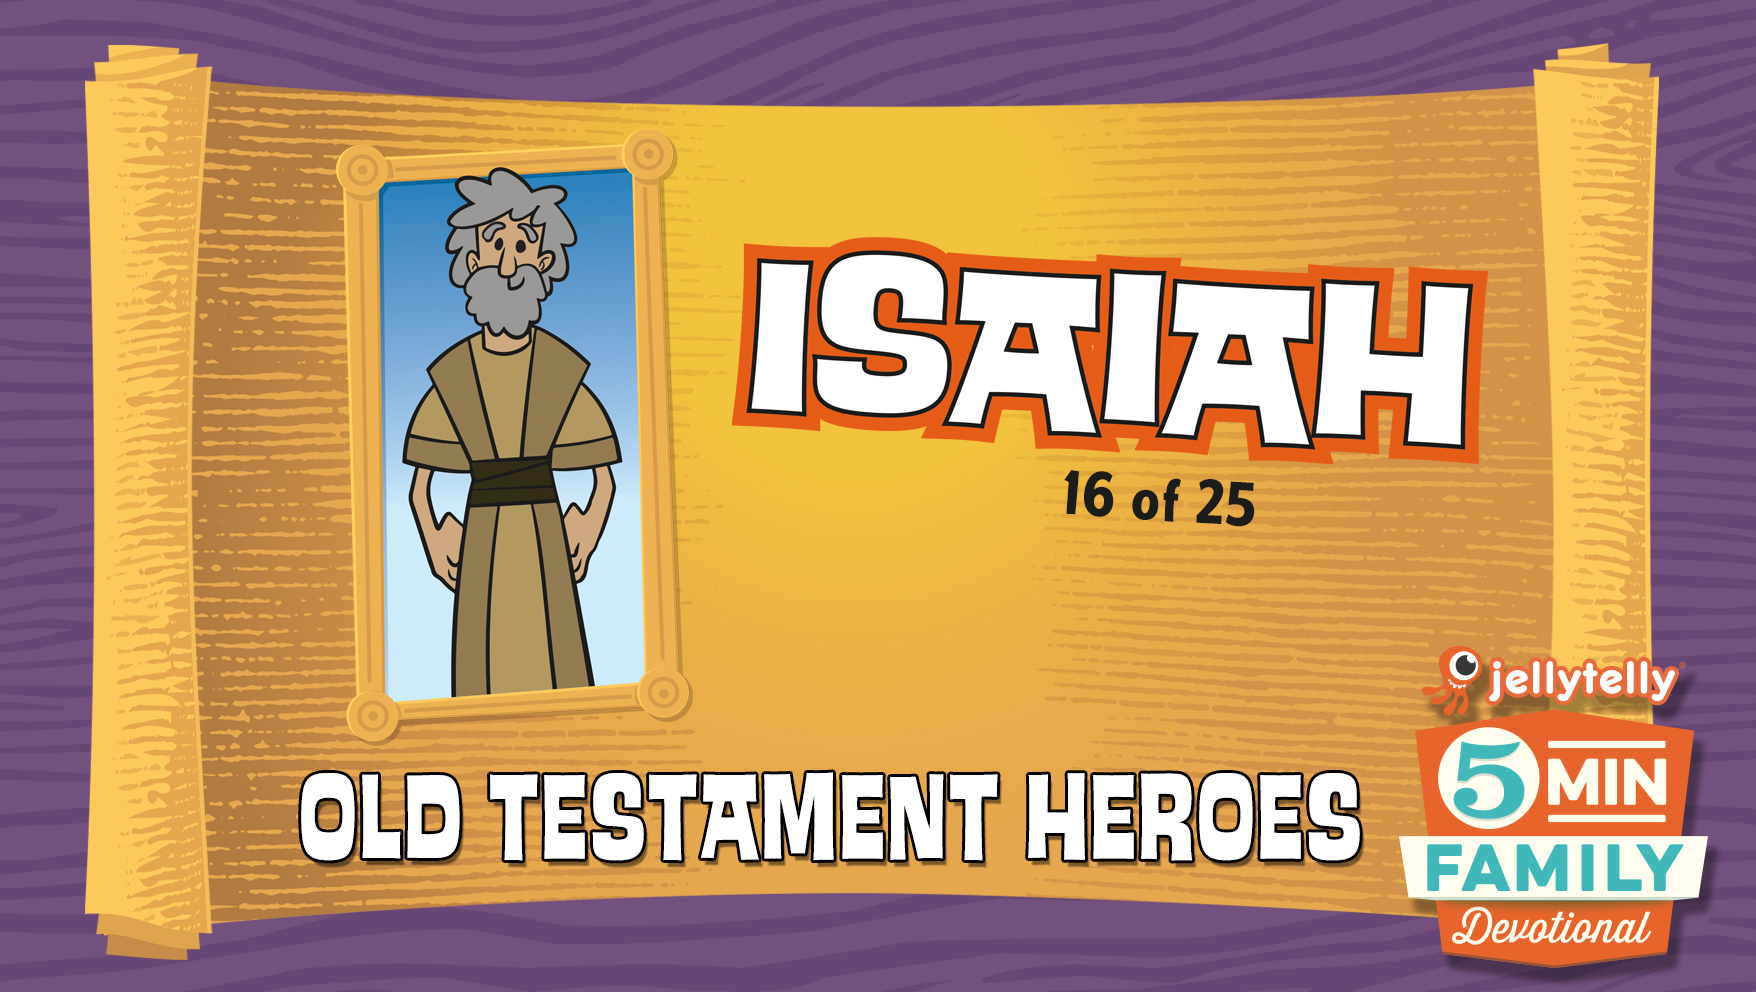 Isaiah: Old Testament Heroes - 5 Minute Family Devotional